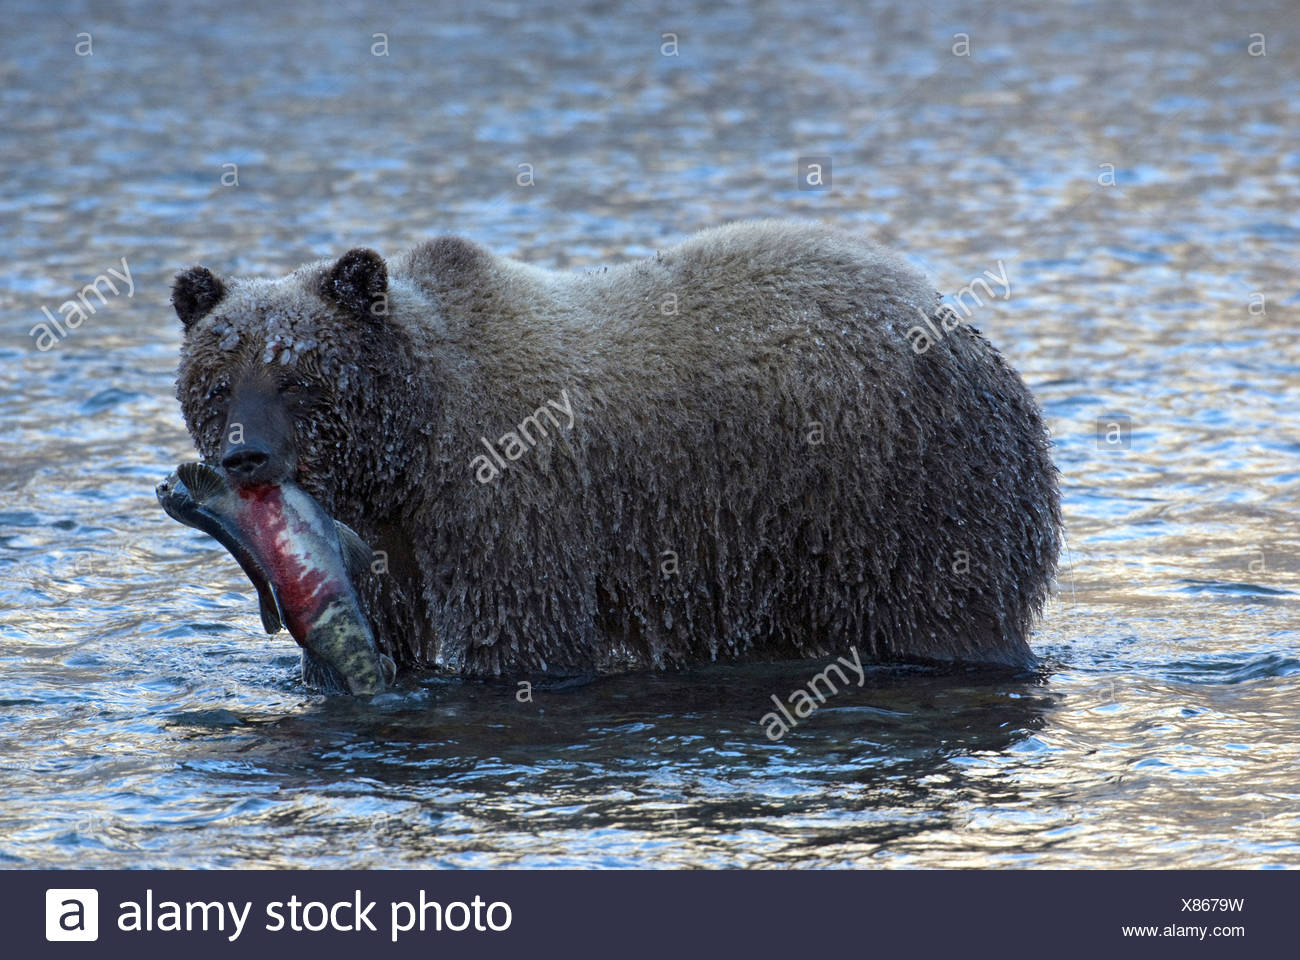 Wild Grizzly bear carrying chum or dog salmon in early winter in Fishing Branch River.  Fishing Branch Ni'iinlii'njik Park Yukon - Stock Image